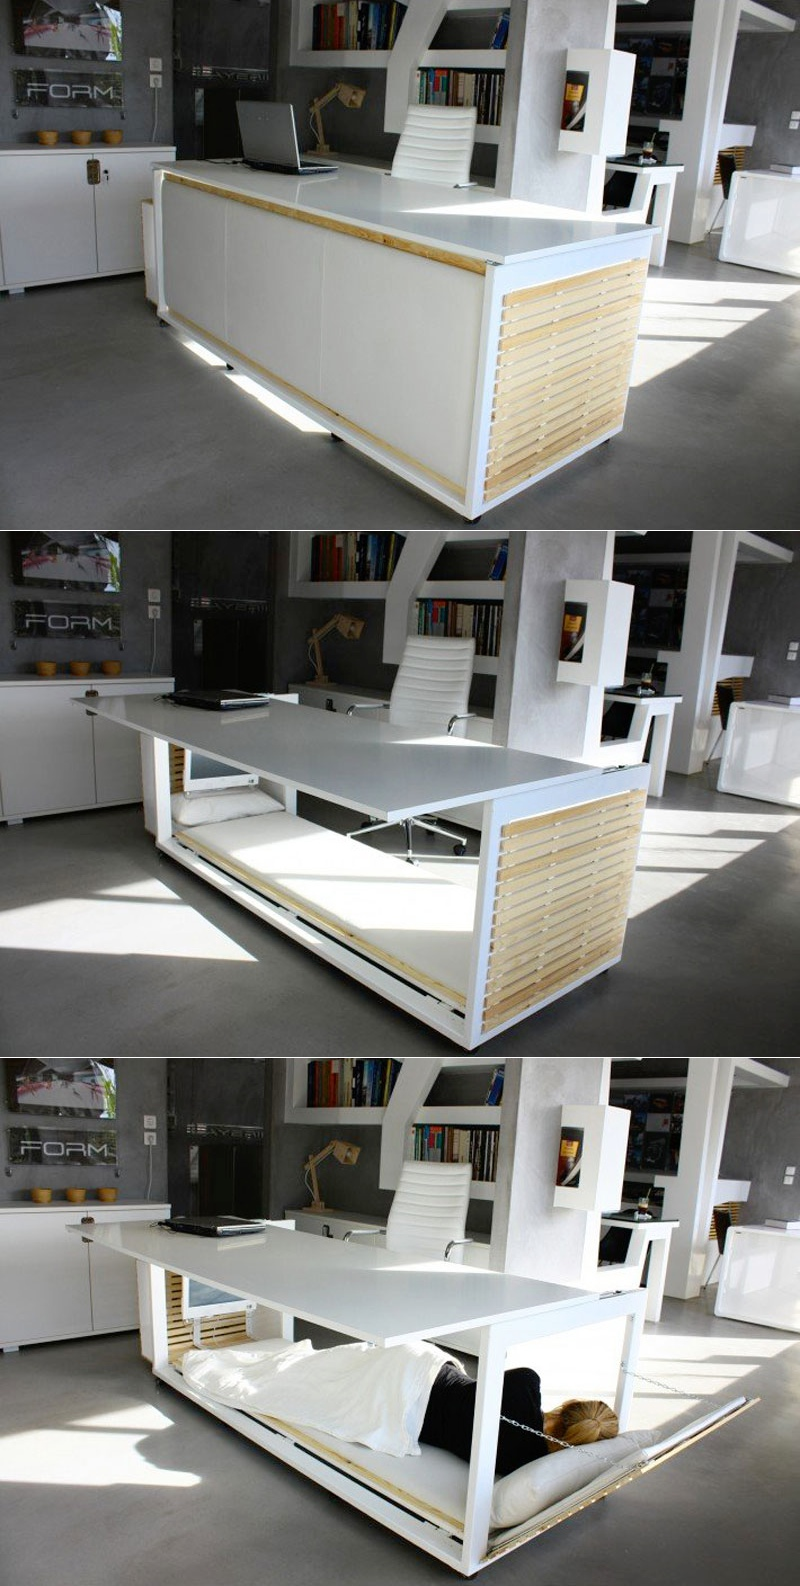 Work Desk Bed - 30 inspirational home office desks